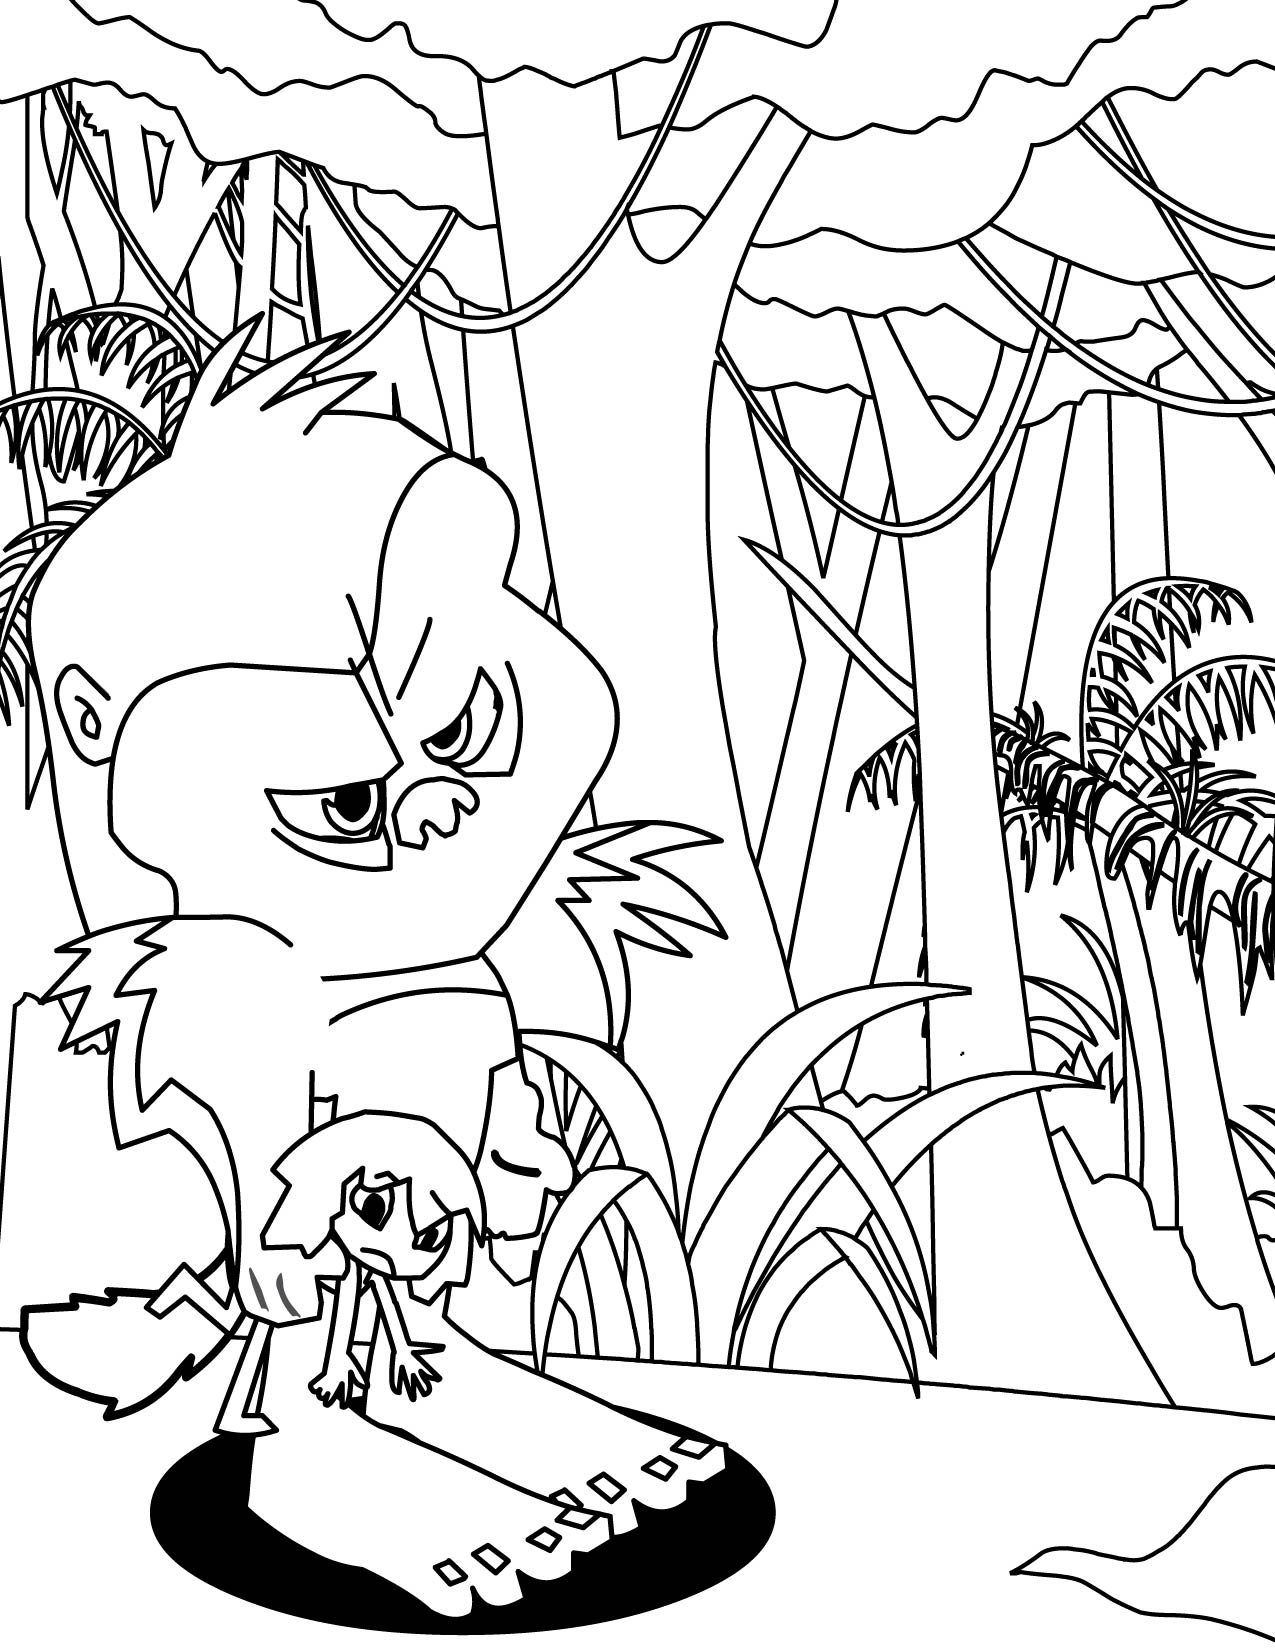 primary coloring pages colouring pages asis pre primary coloring pages primary